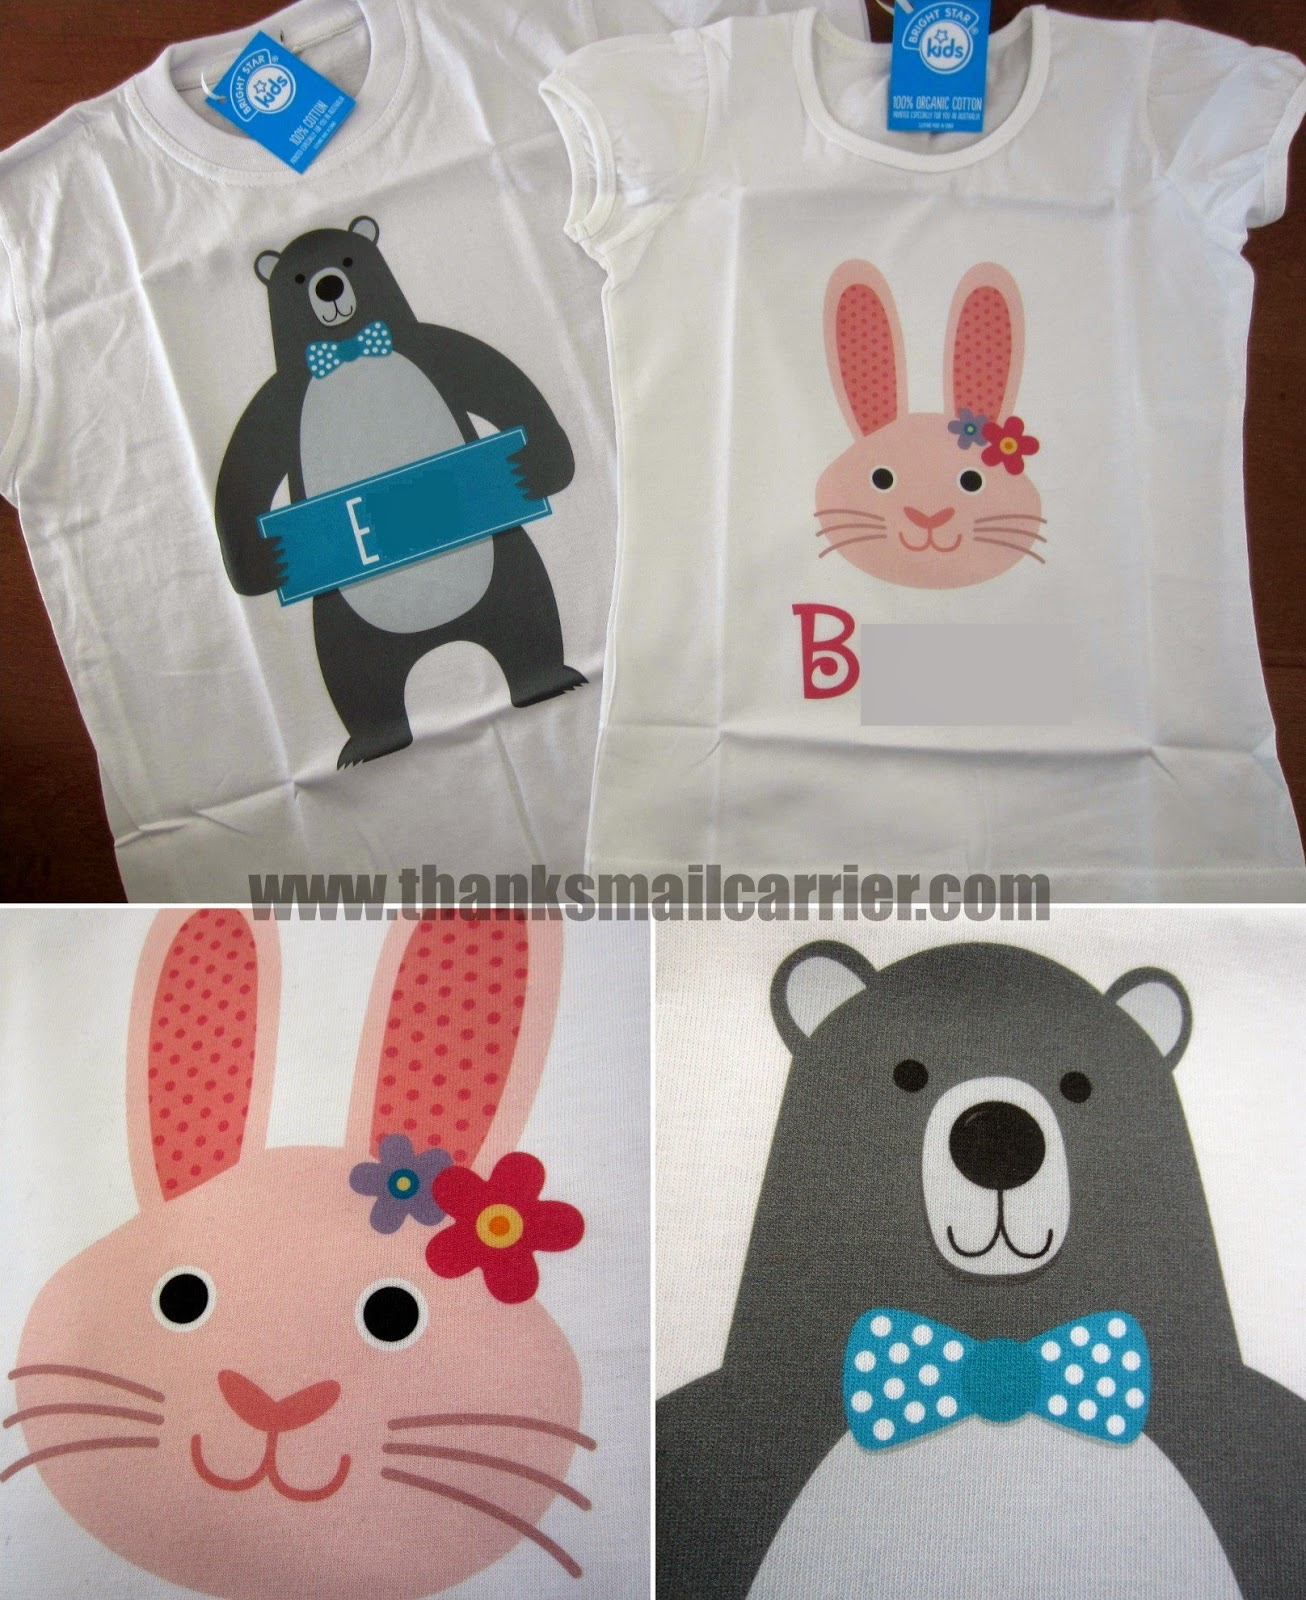 custom children's shirts